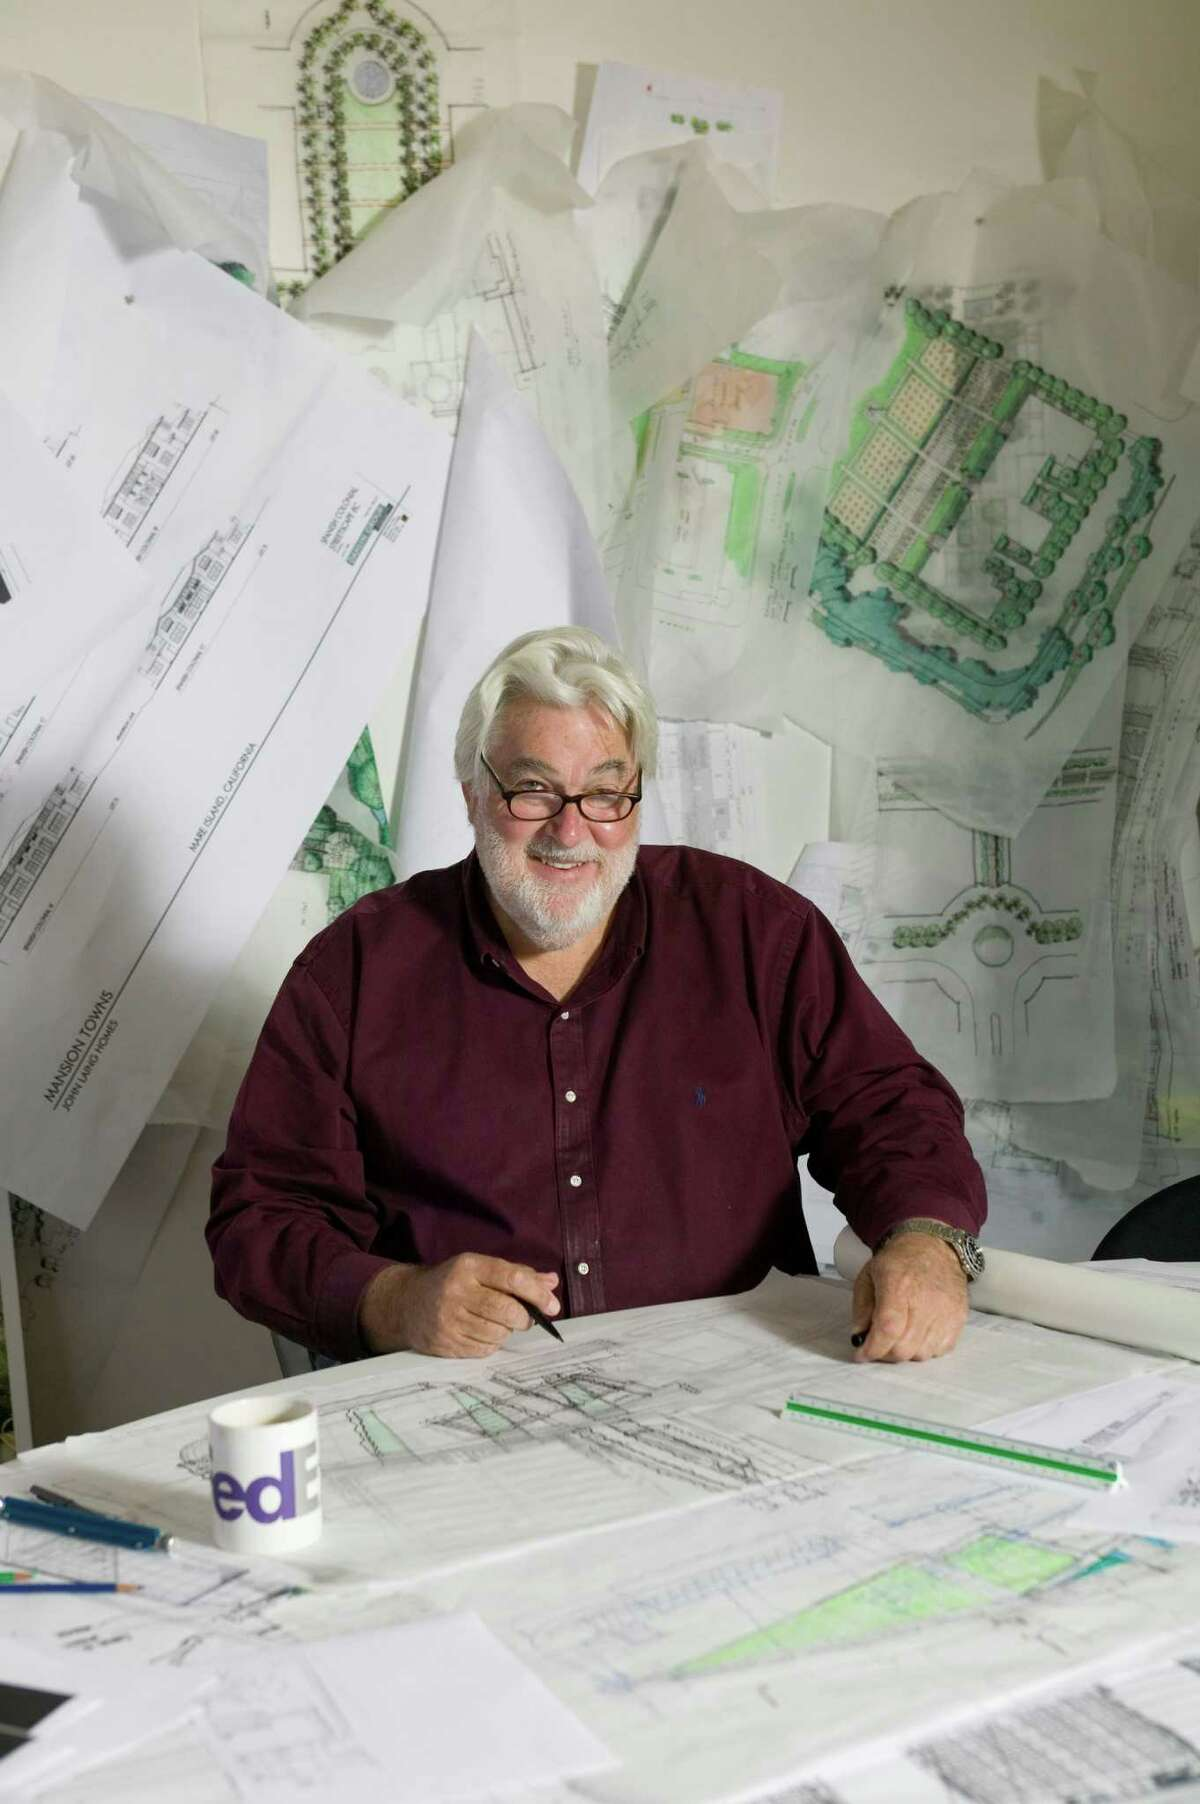 William B. Callaway in his studio at the landscape architecture firm SWA Group. Mr. Callaway died on Nov. 25, 2014 at the age of 71.